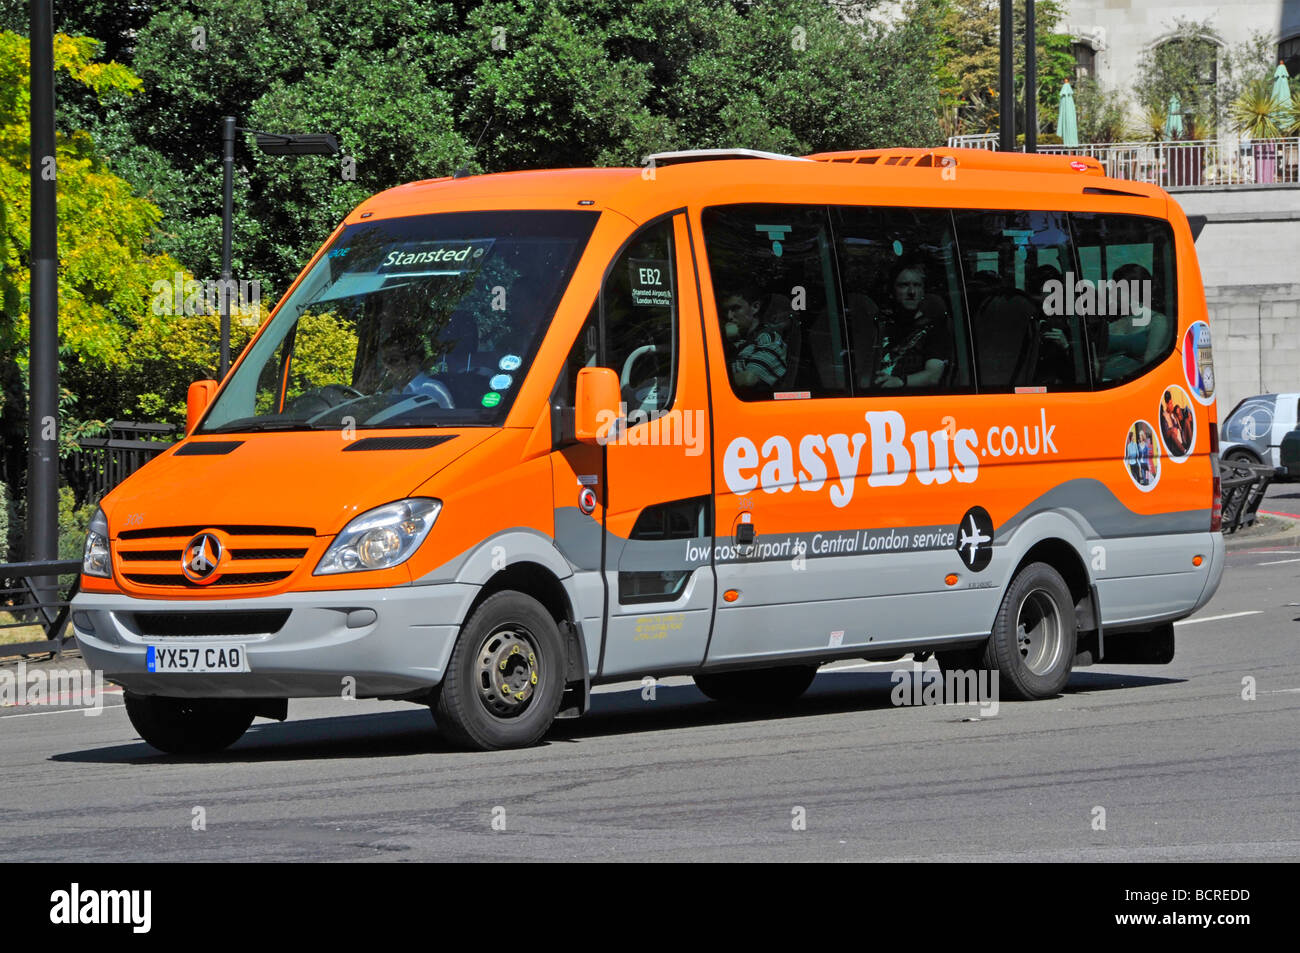 EastBus low cost mini bus service between Central London and Stansted Airport operated by Arriva - Stock Image